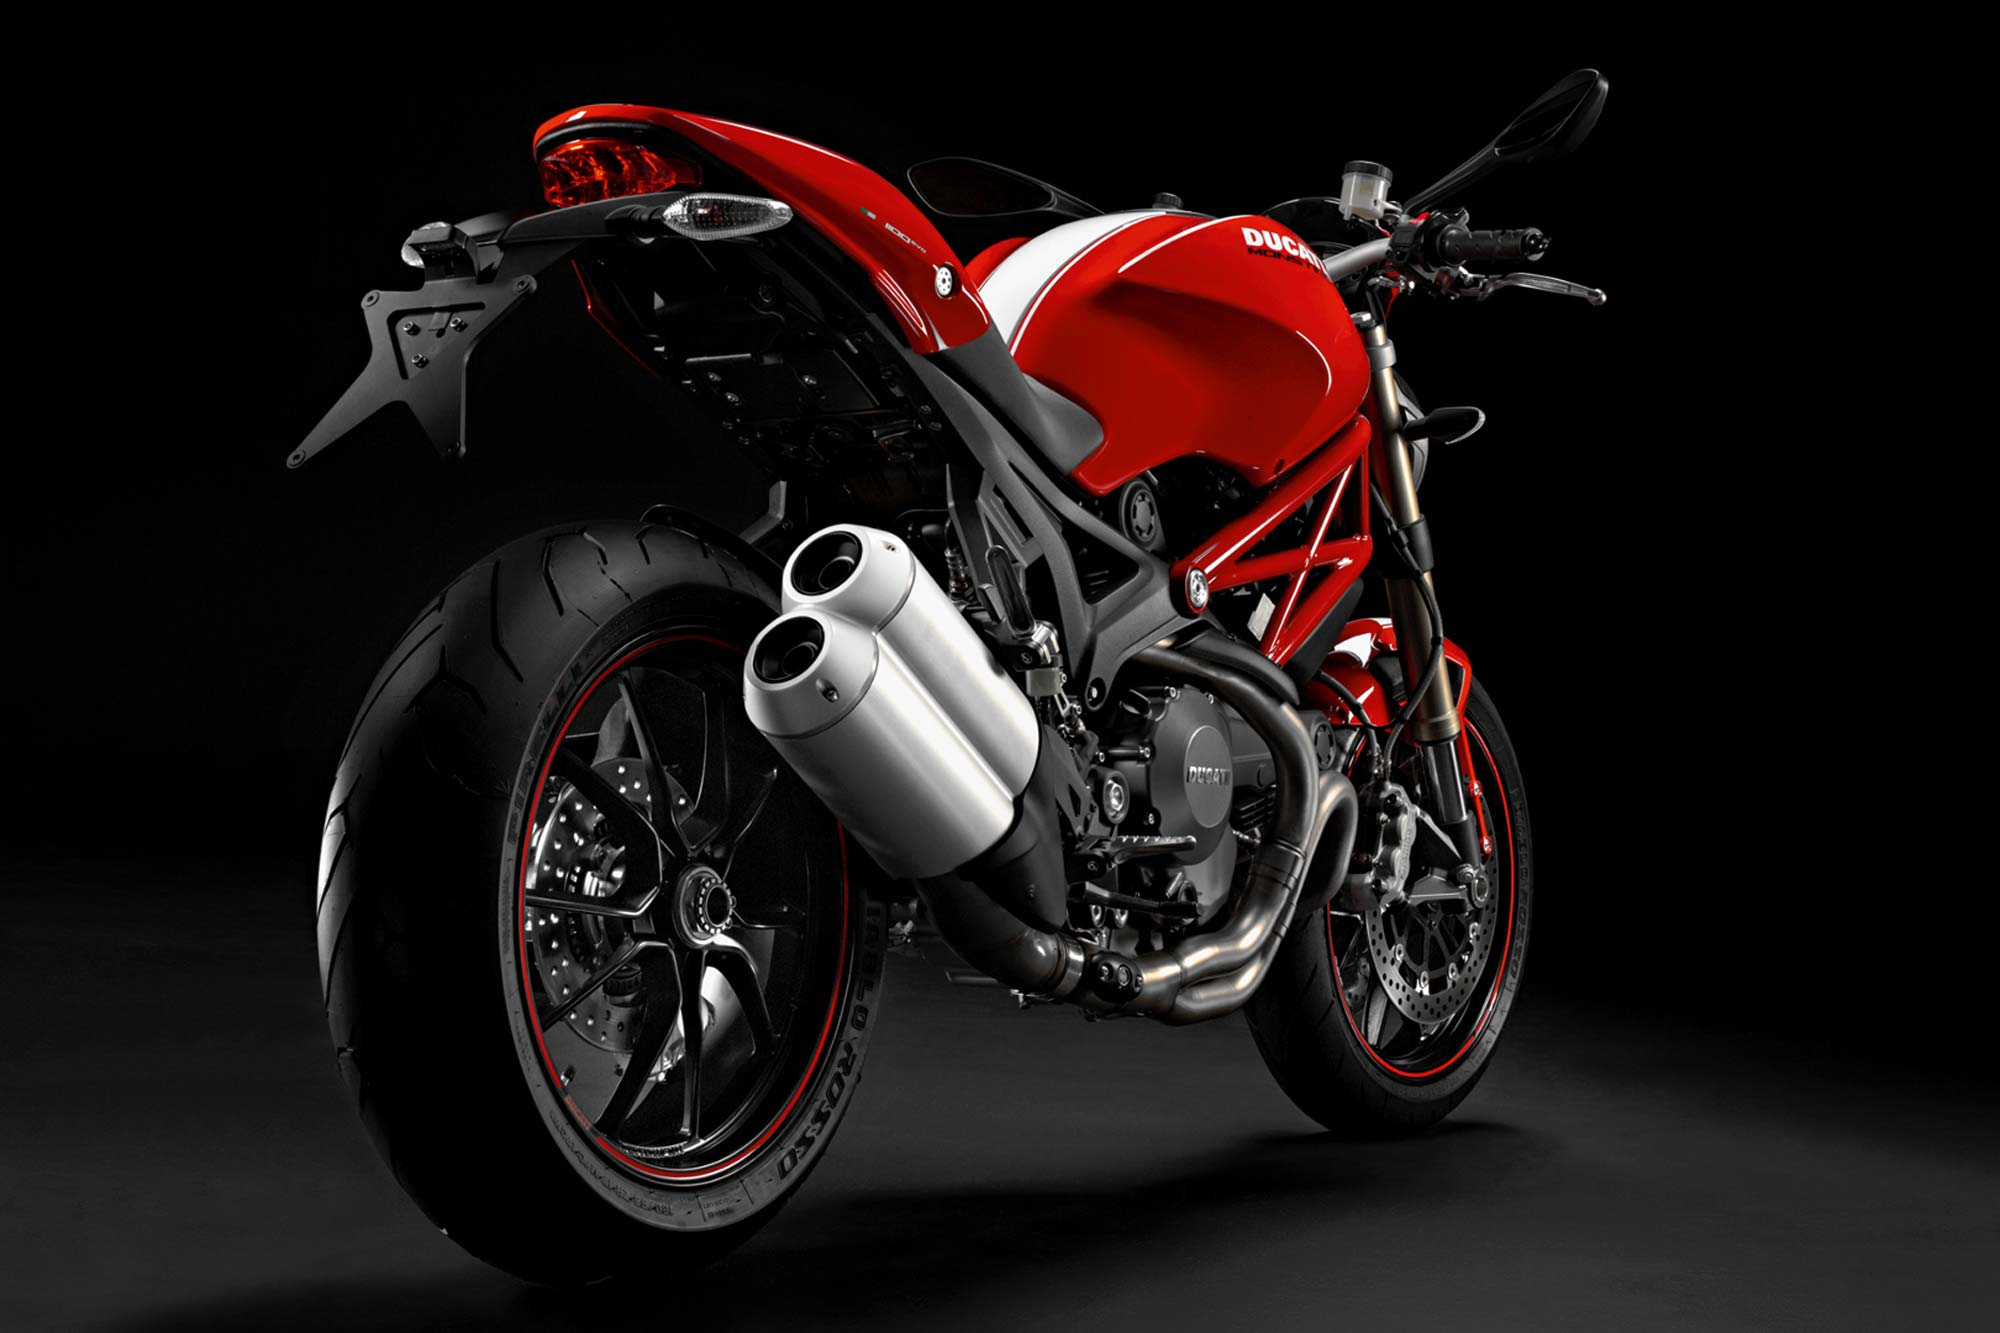 2011 ducati monster 1100 evo - anandtech forums